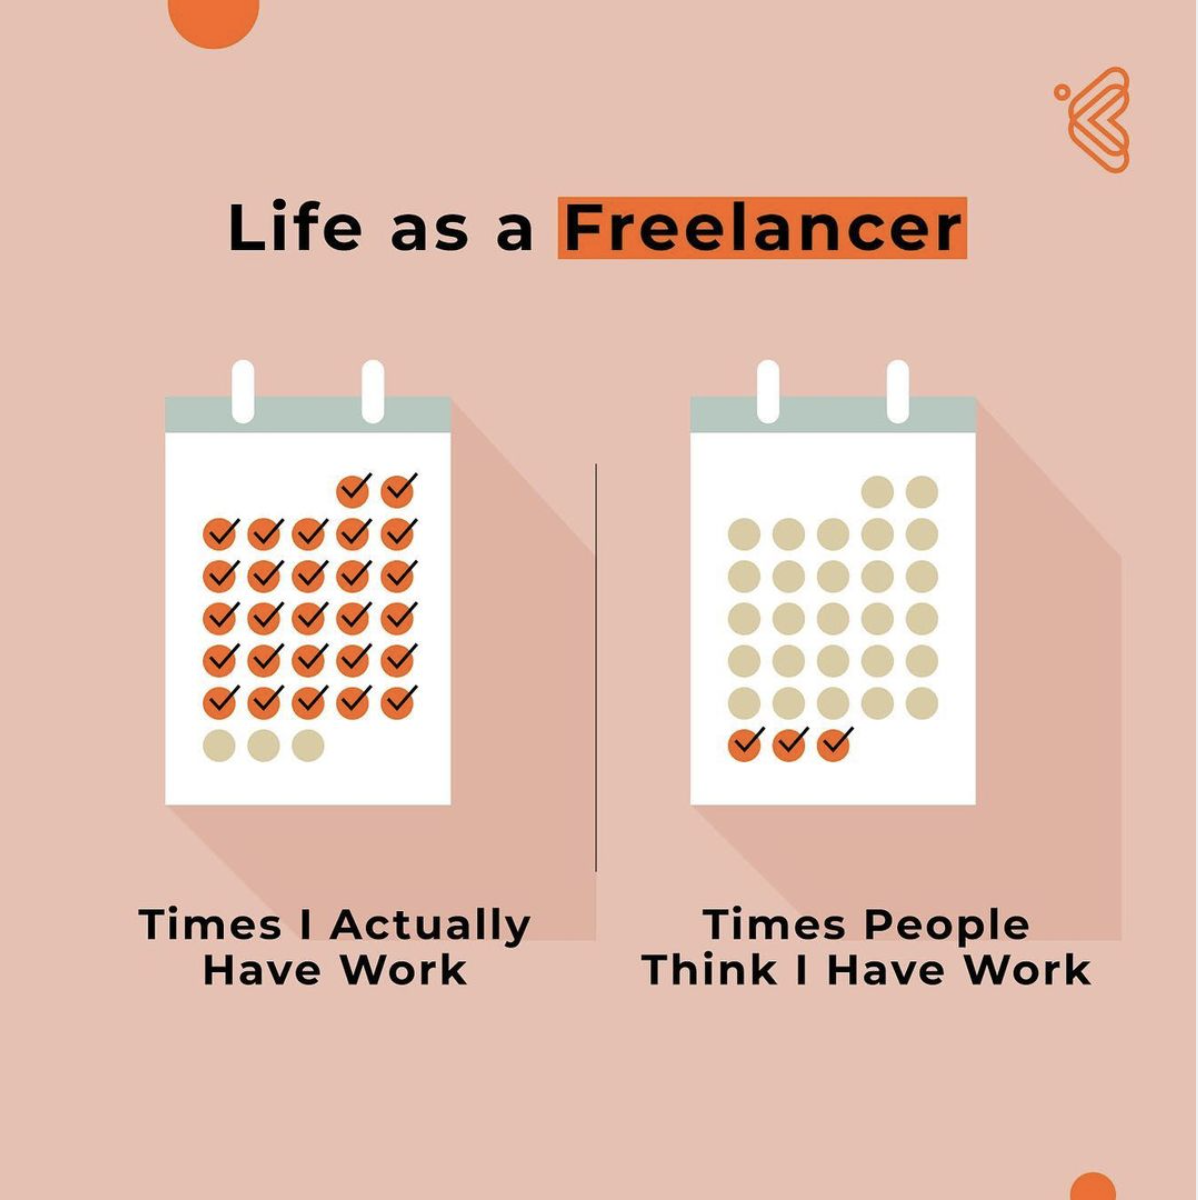 Life as a freelancer: Times I actually have work vs times people think I have work